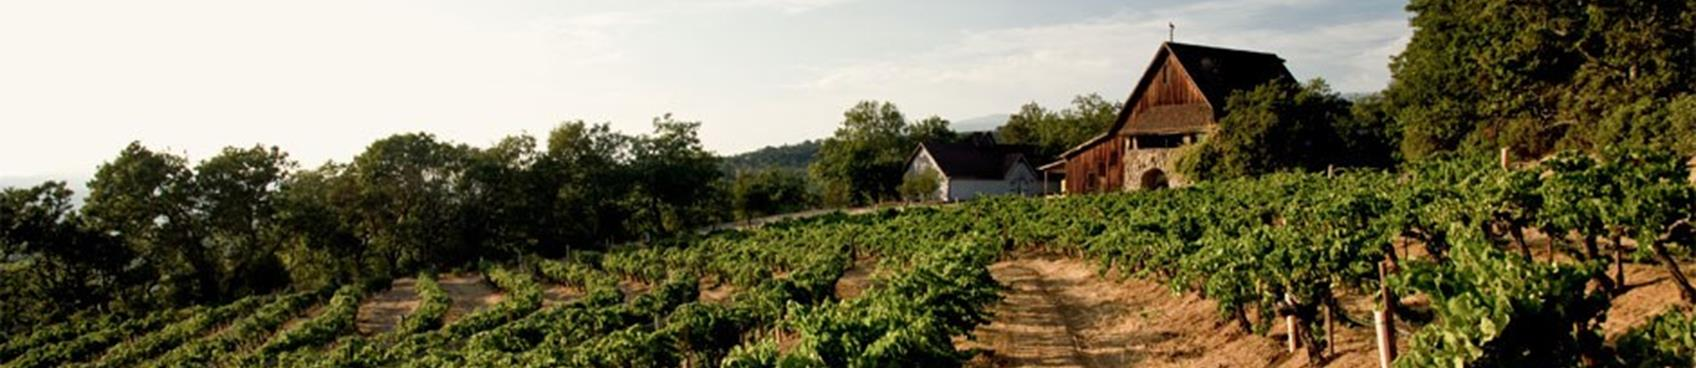 A image of Hanzell Vineyards